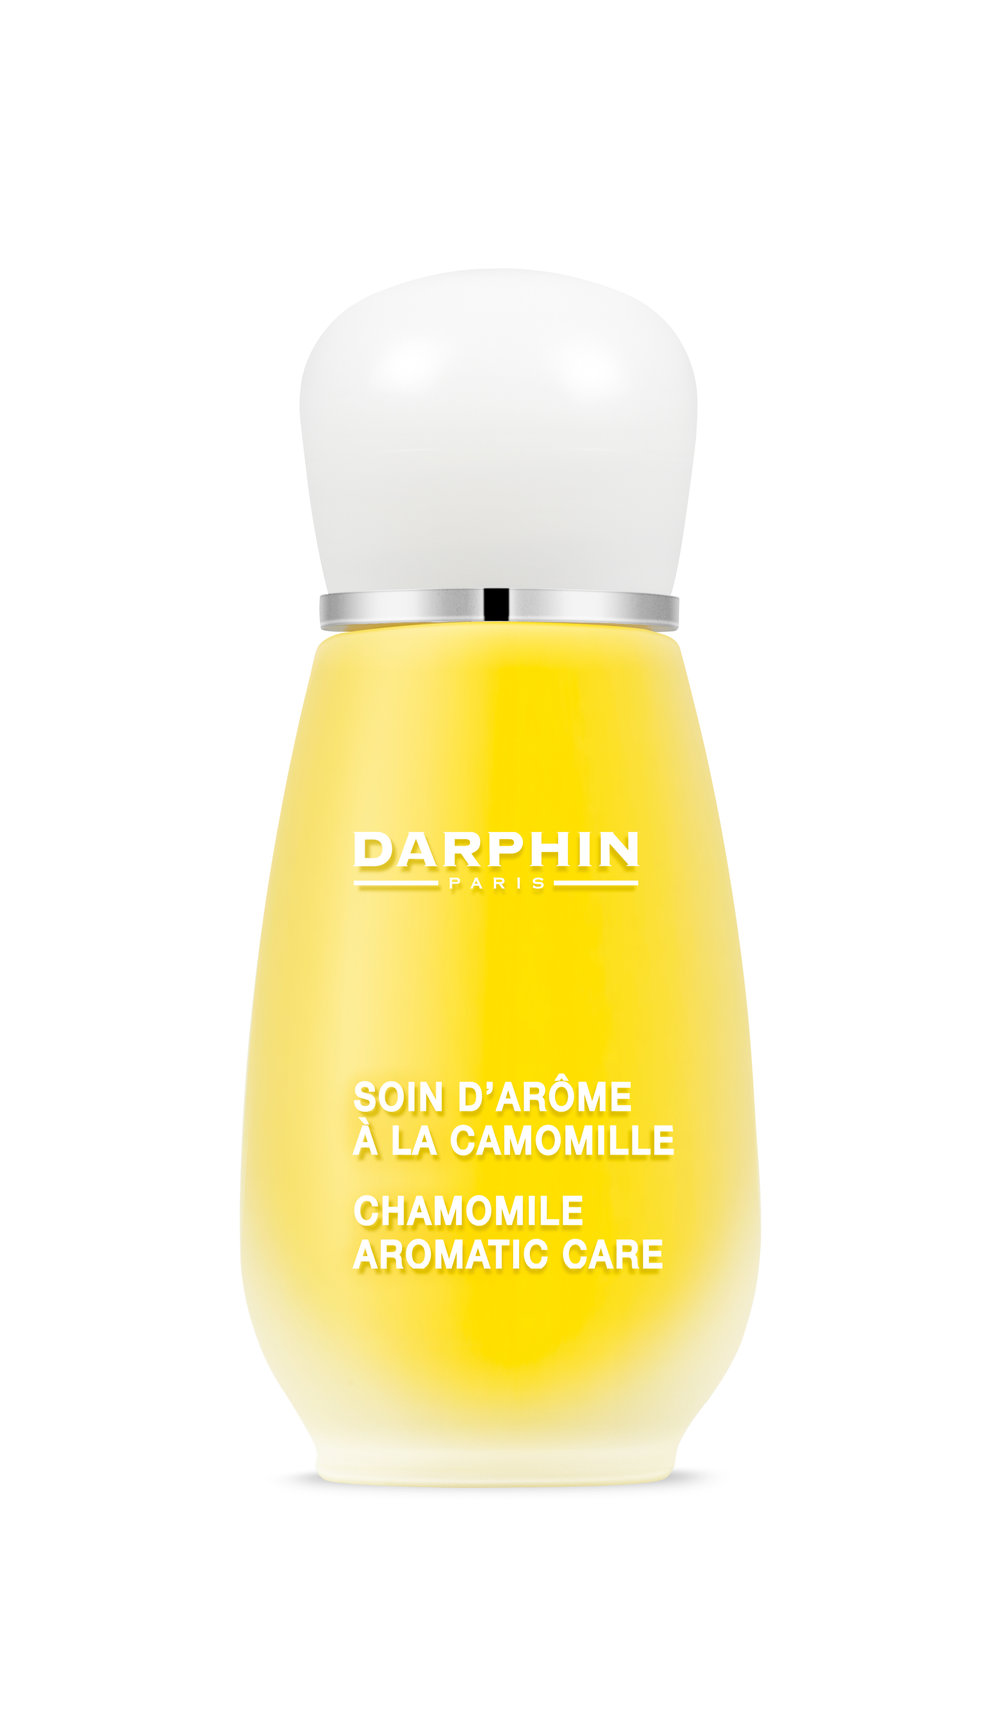 Darphin Chamomile Aromatic Care, Available at Darphin